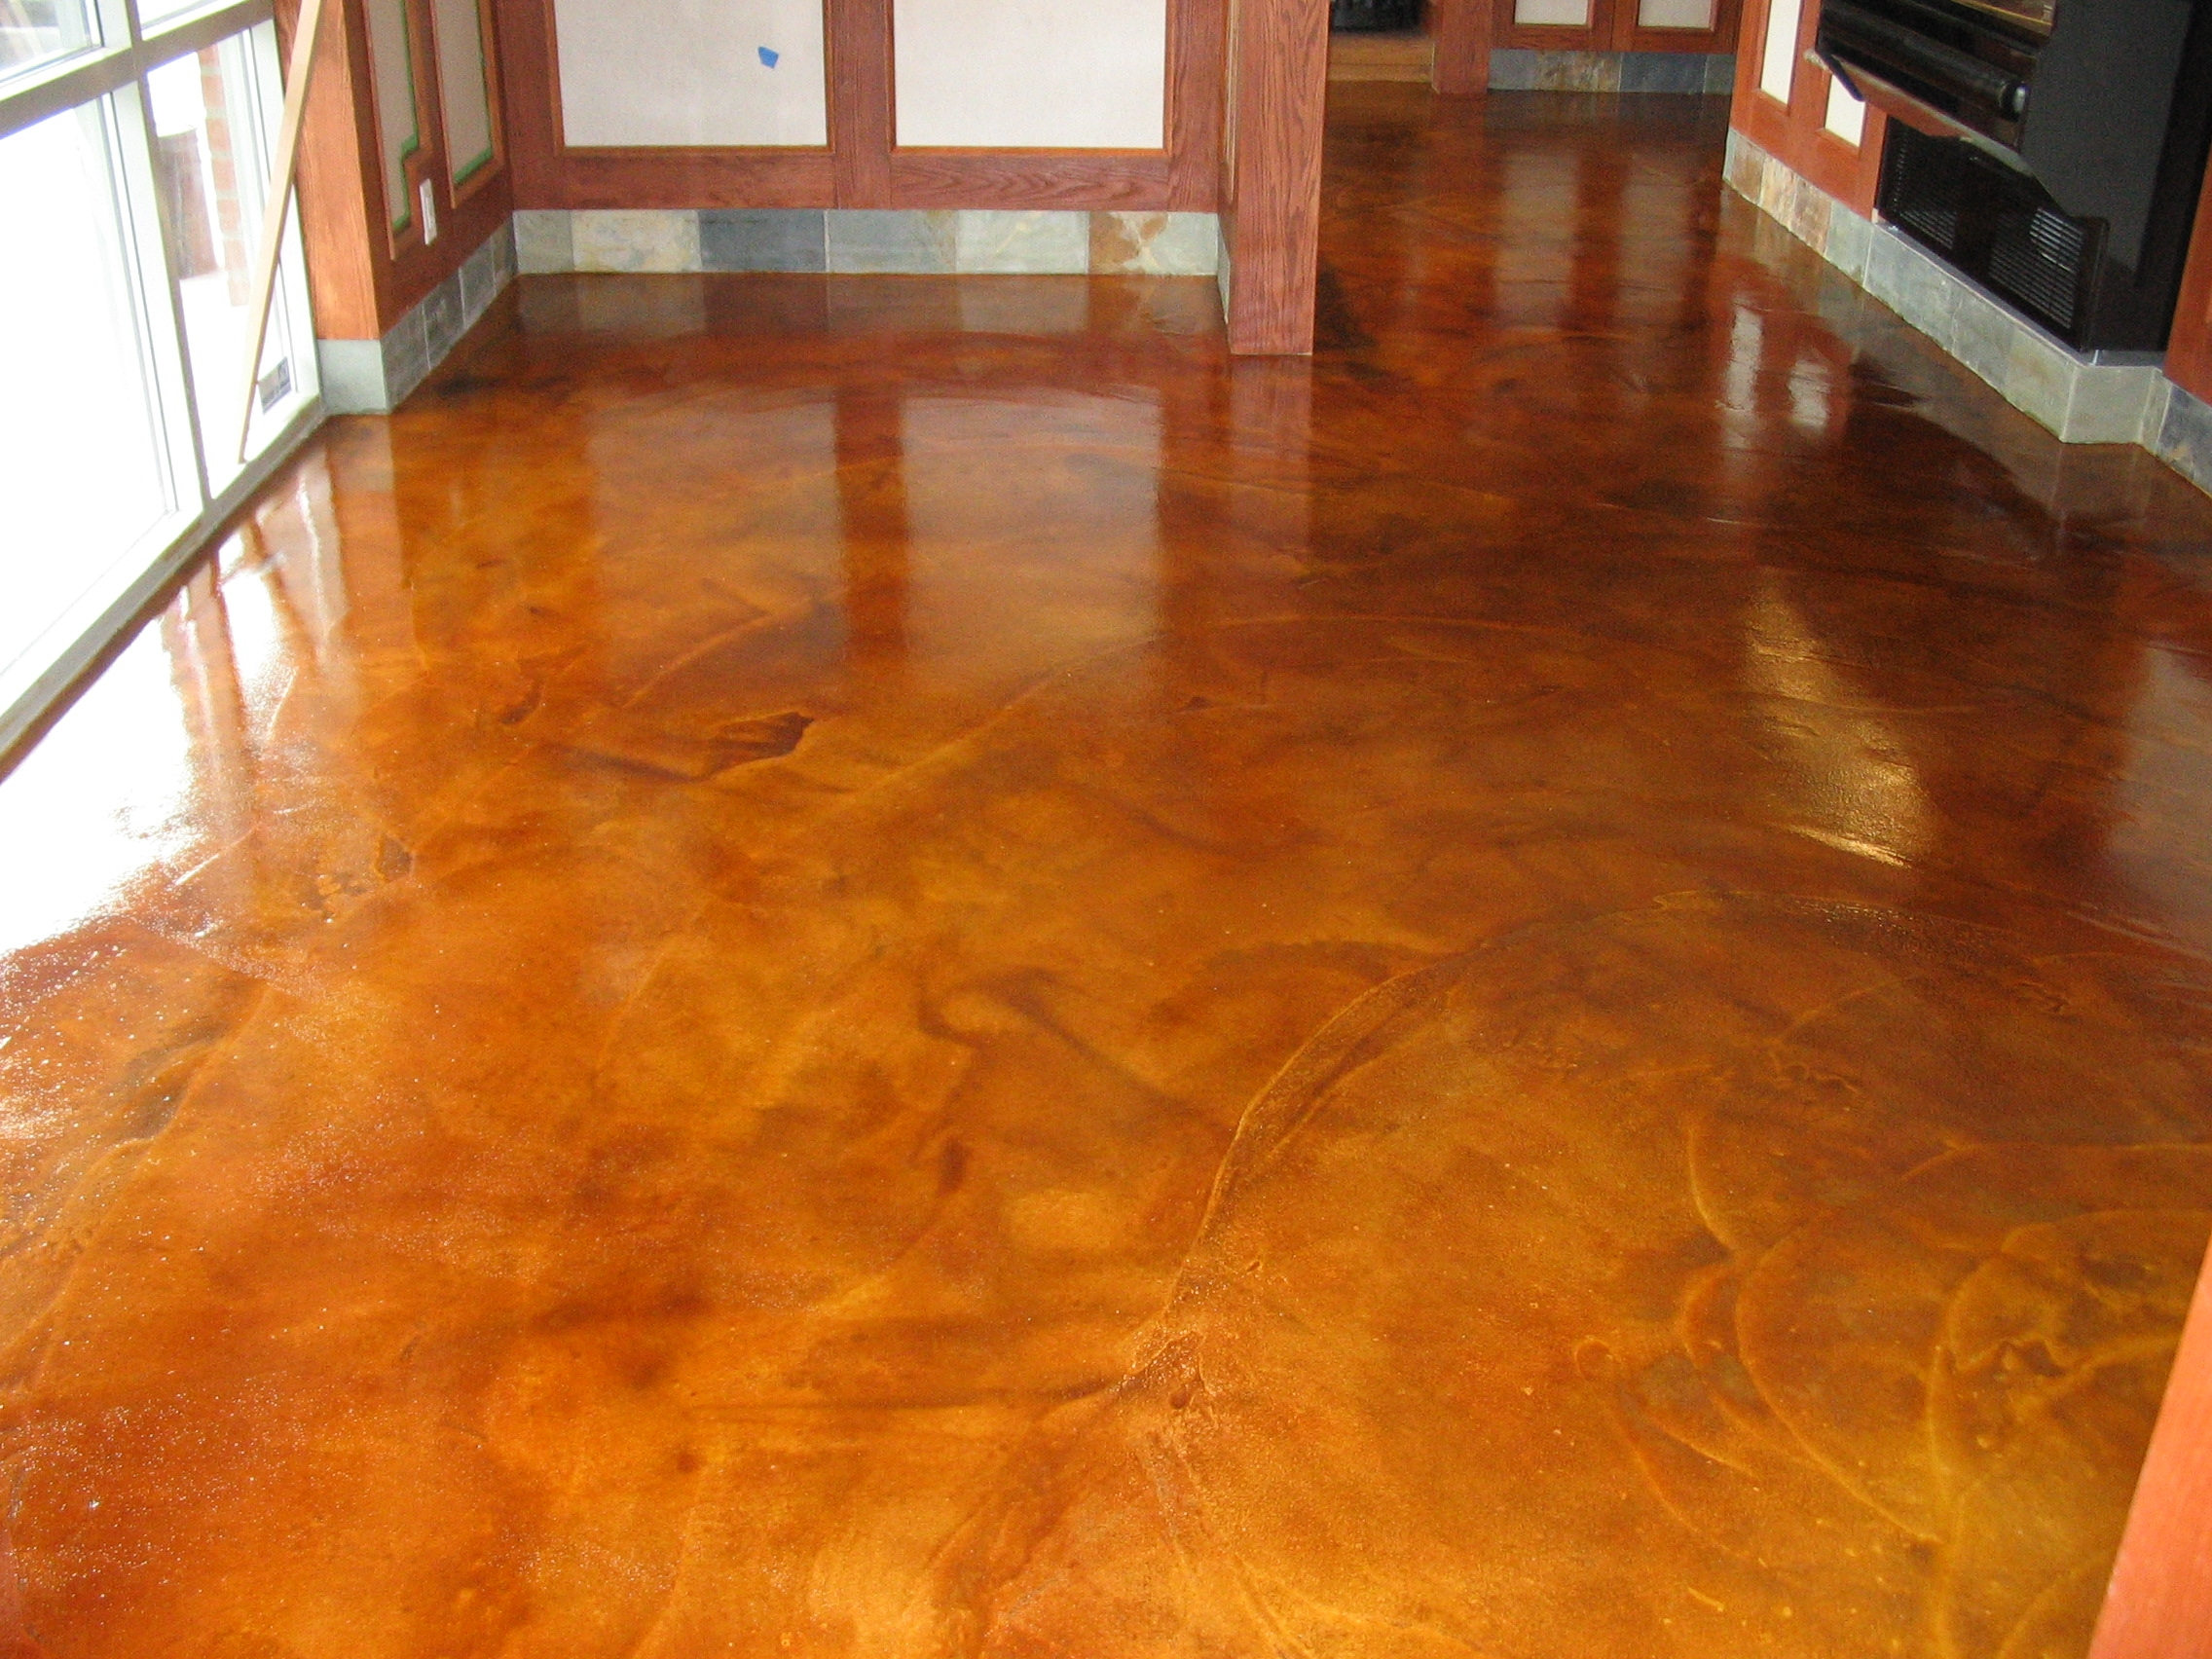 Stained Concrete Floors For Different Home Flooring Ideas - HGNV.COM